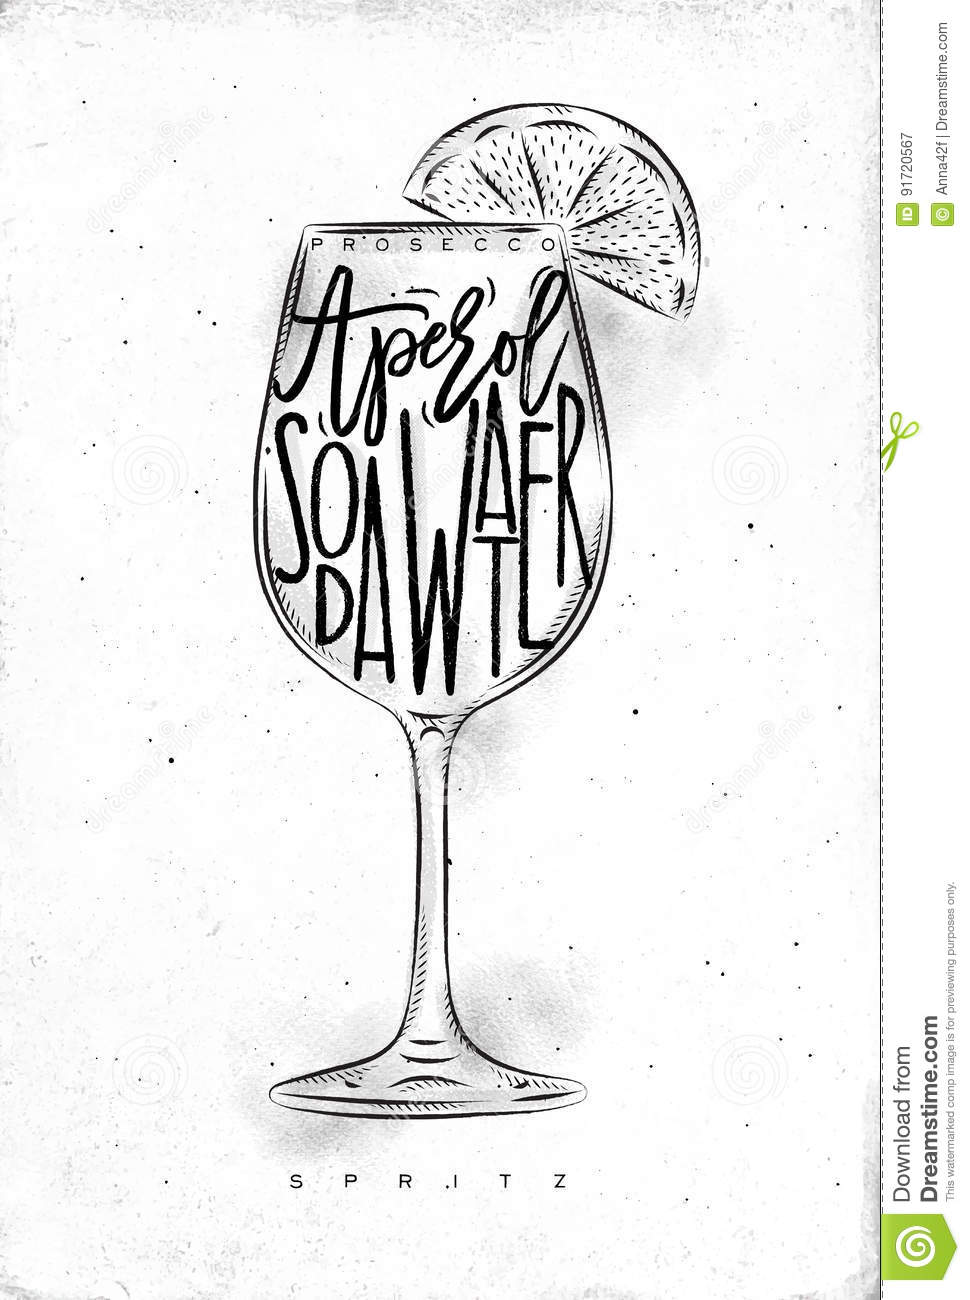 Prosecco Cartoons Illustrations Amp Vector Stock Images 161 Pictures To Download From